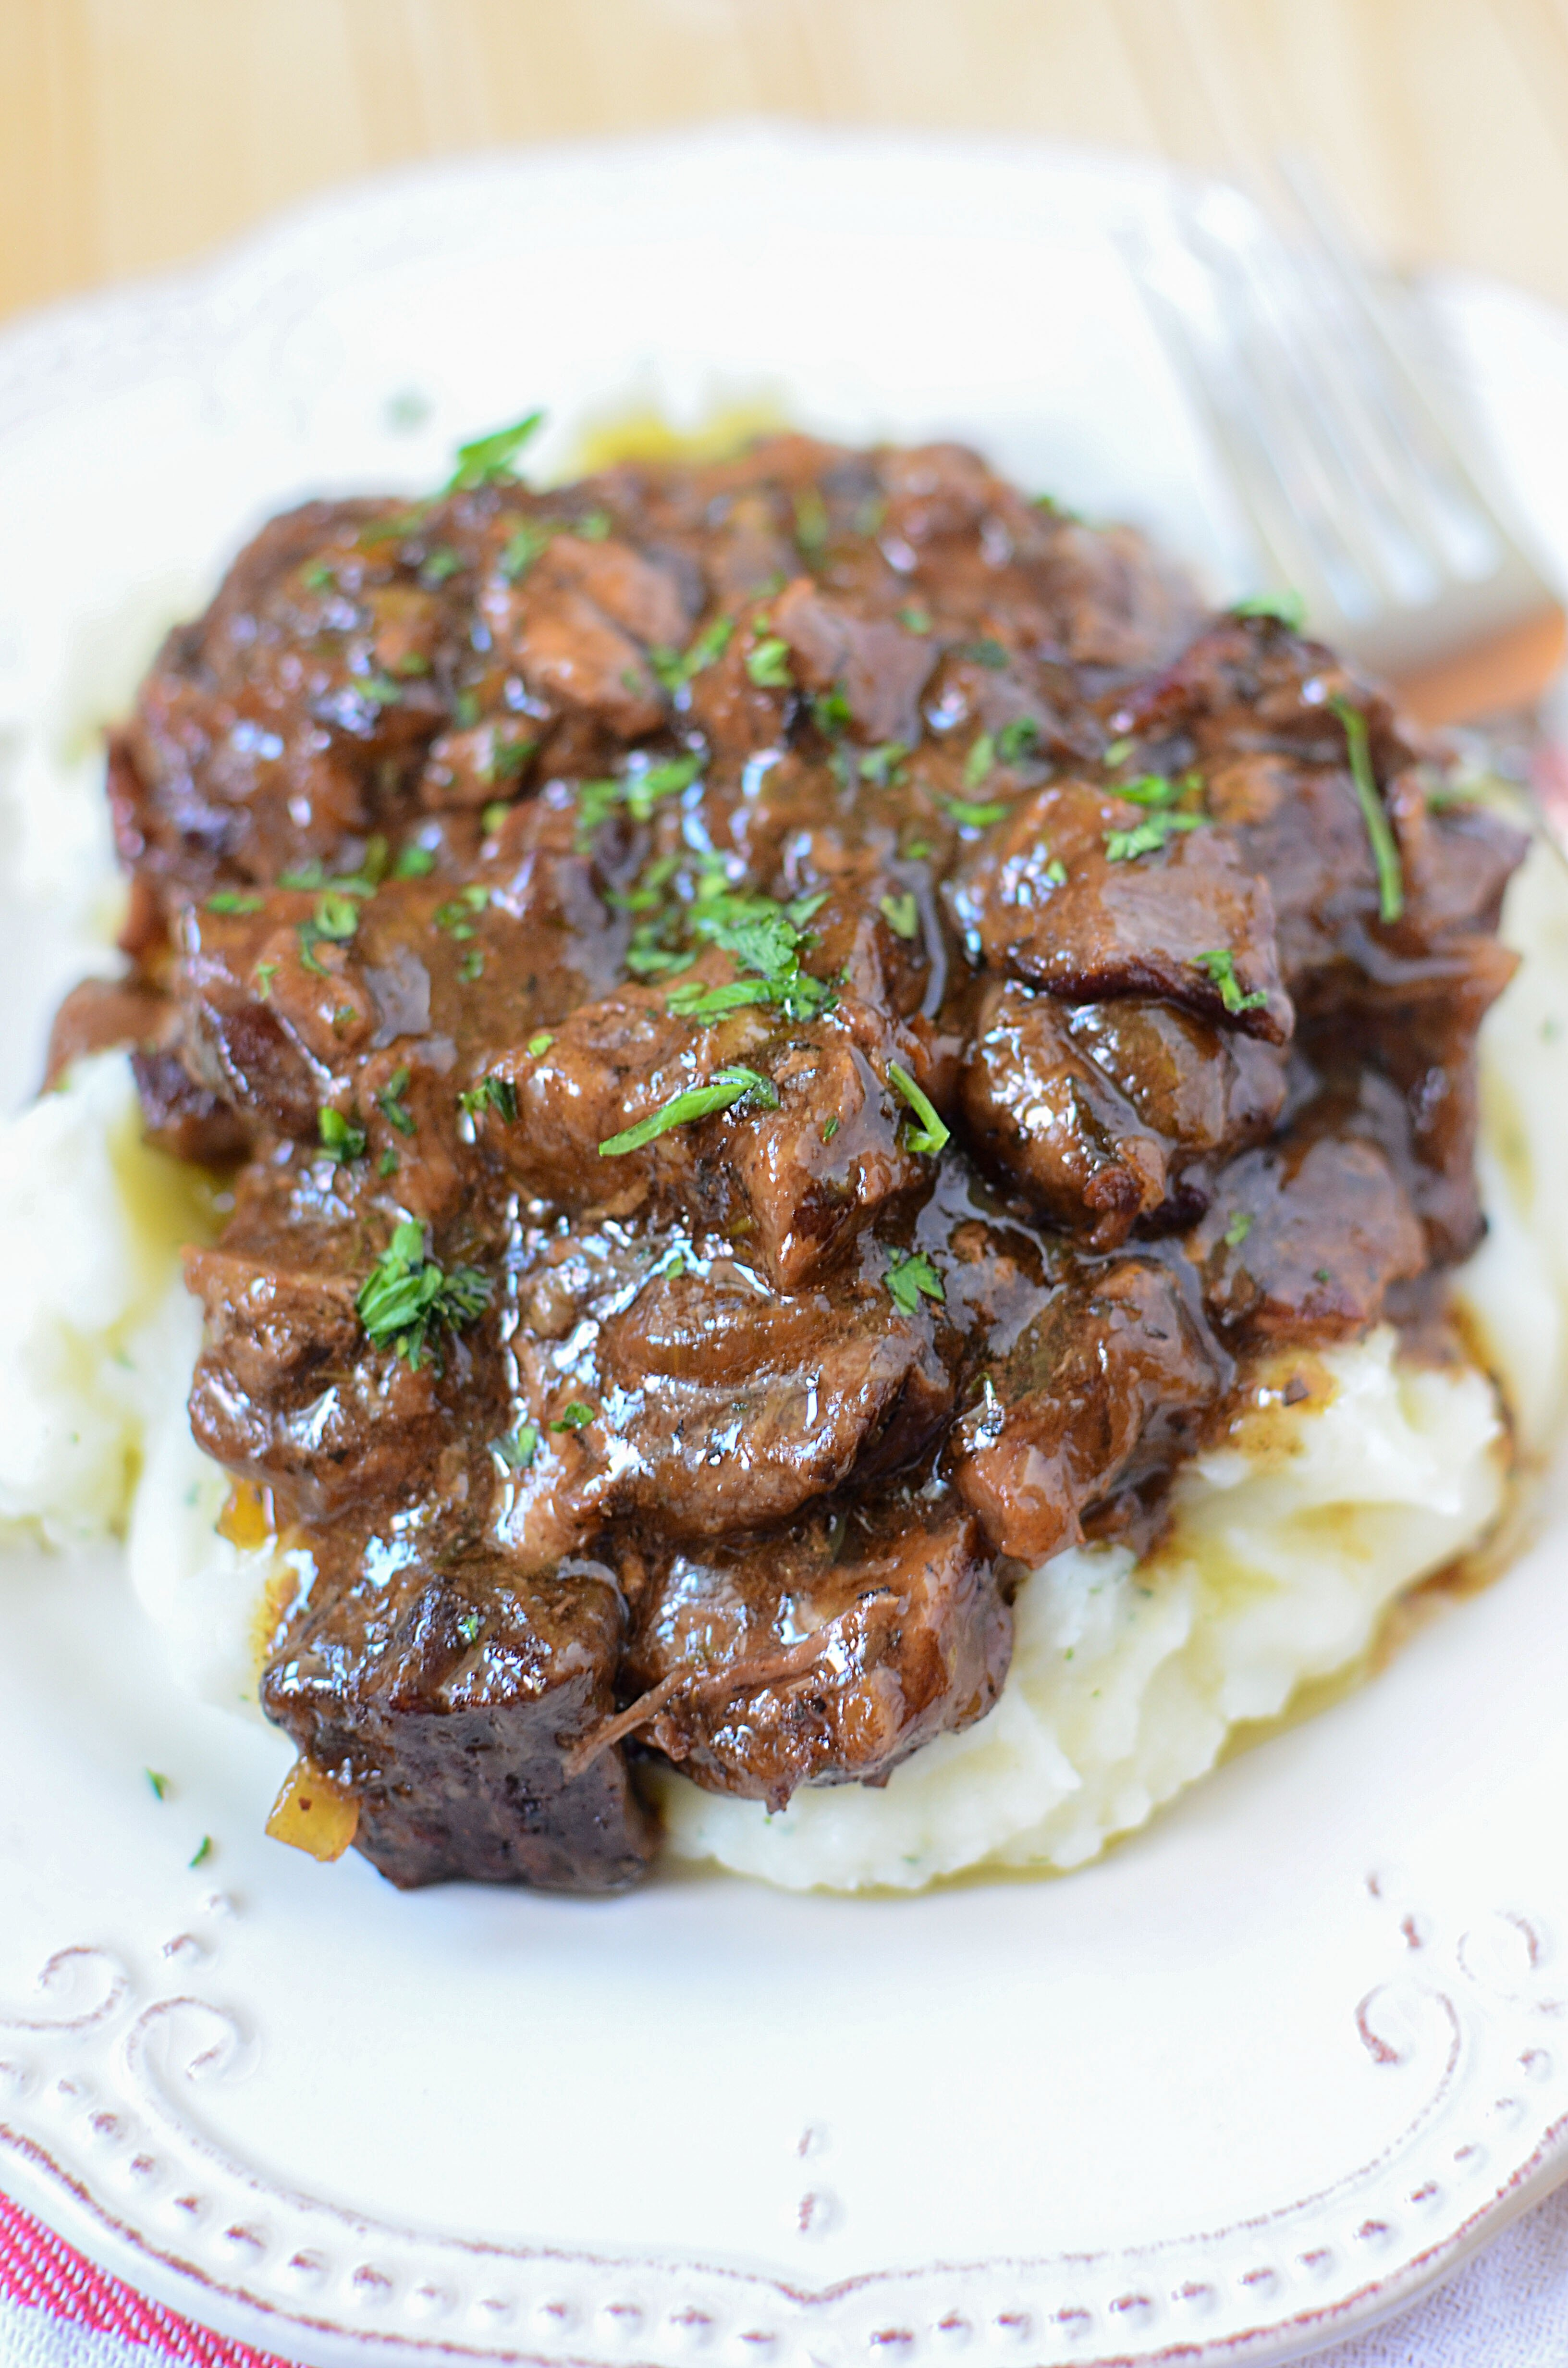 Slow Cooker Beef Pot Roast: Slow Cooker Sirloin Beef Tips In Mushroom Gravy